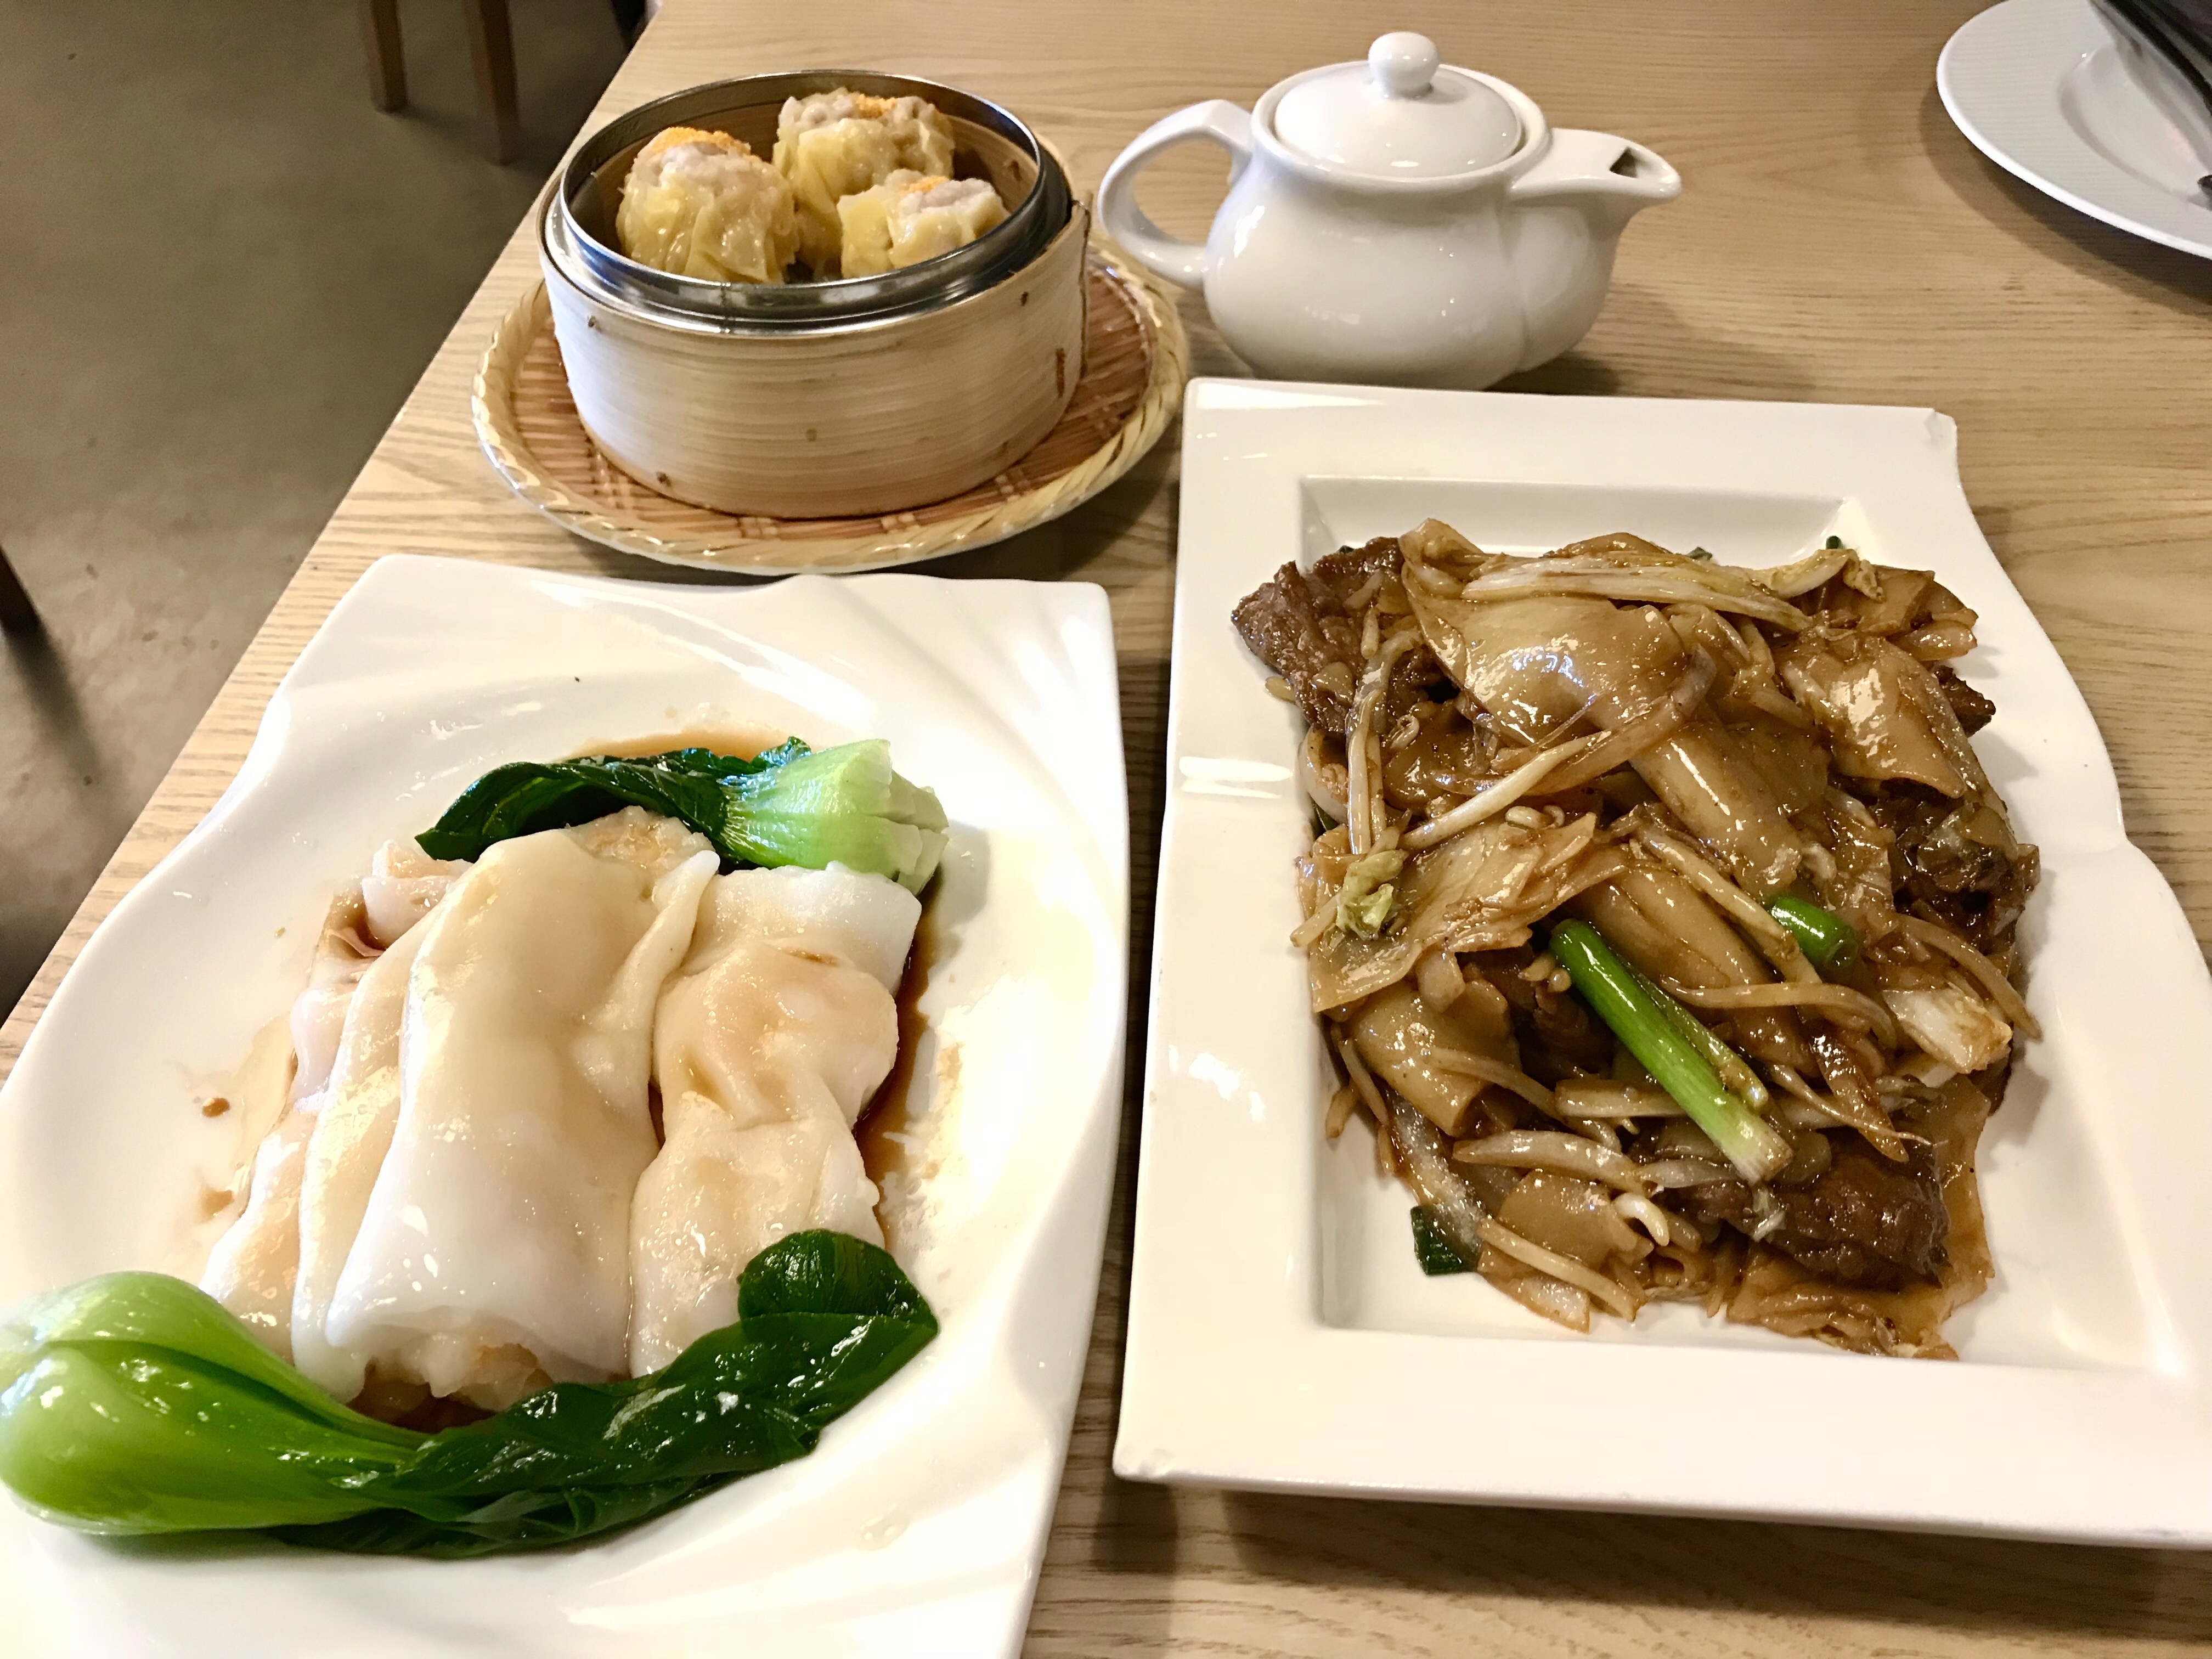 Q by Peter Chang Dim Sum shrimp rice rolls and stir-fried rice noodles and beef